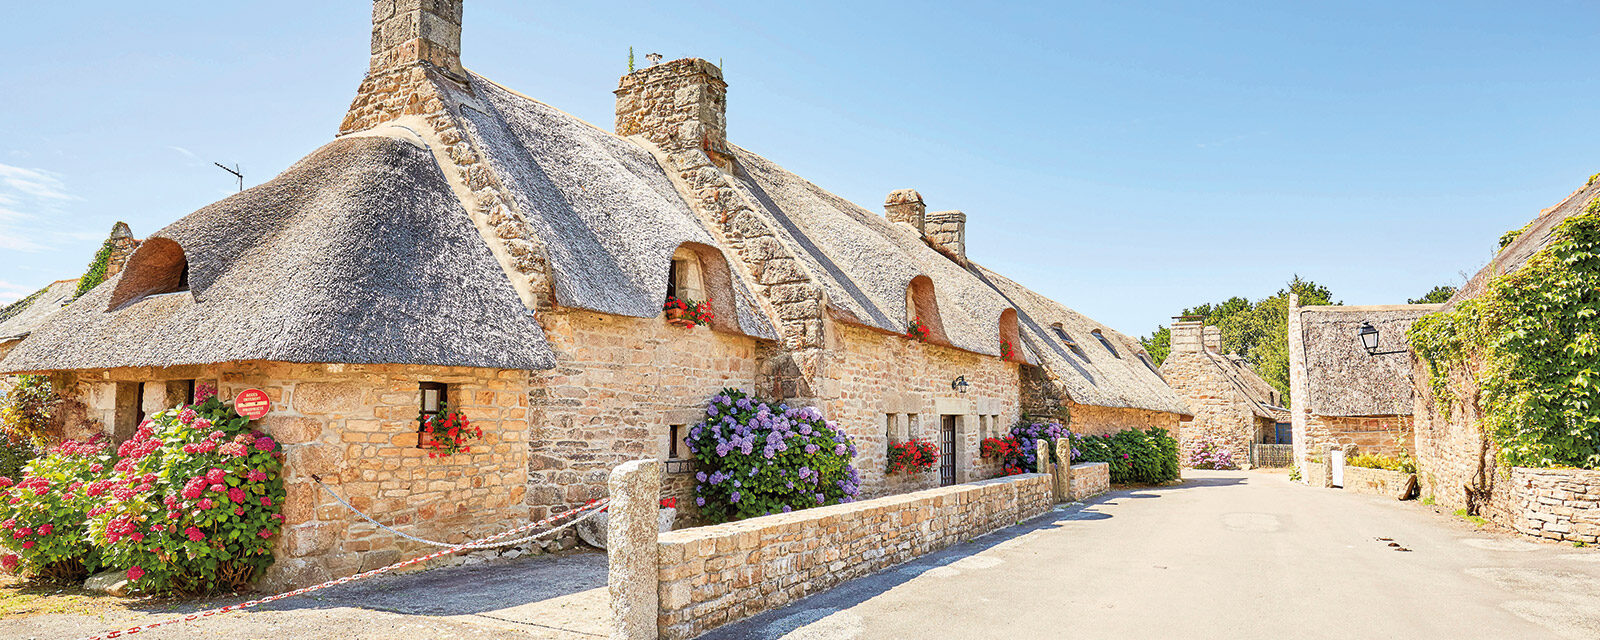 Walk of the thatched houses of Kerascoët